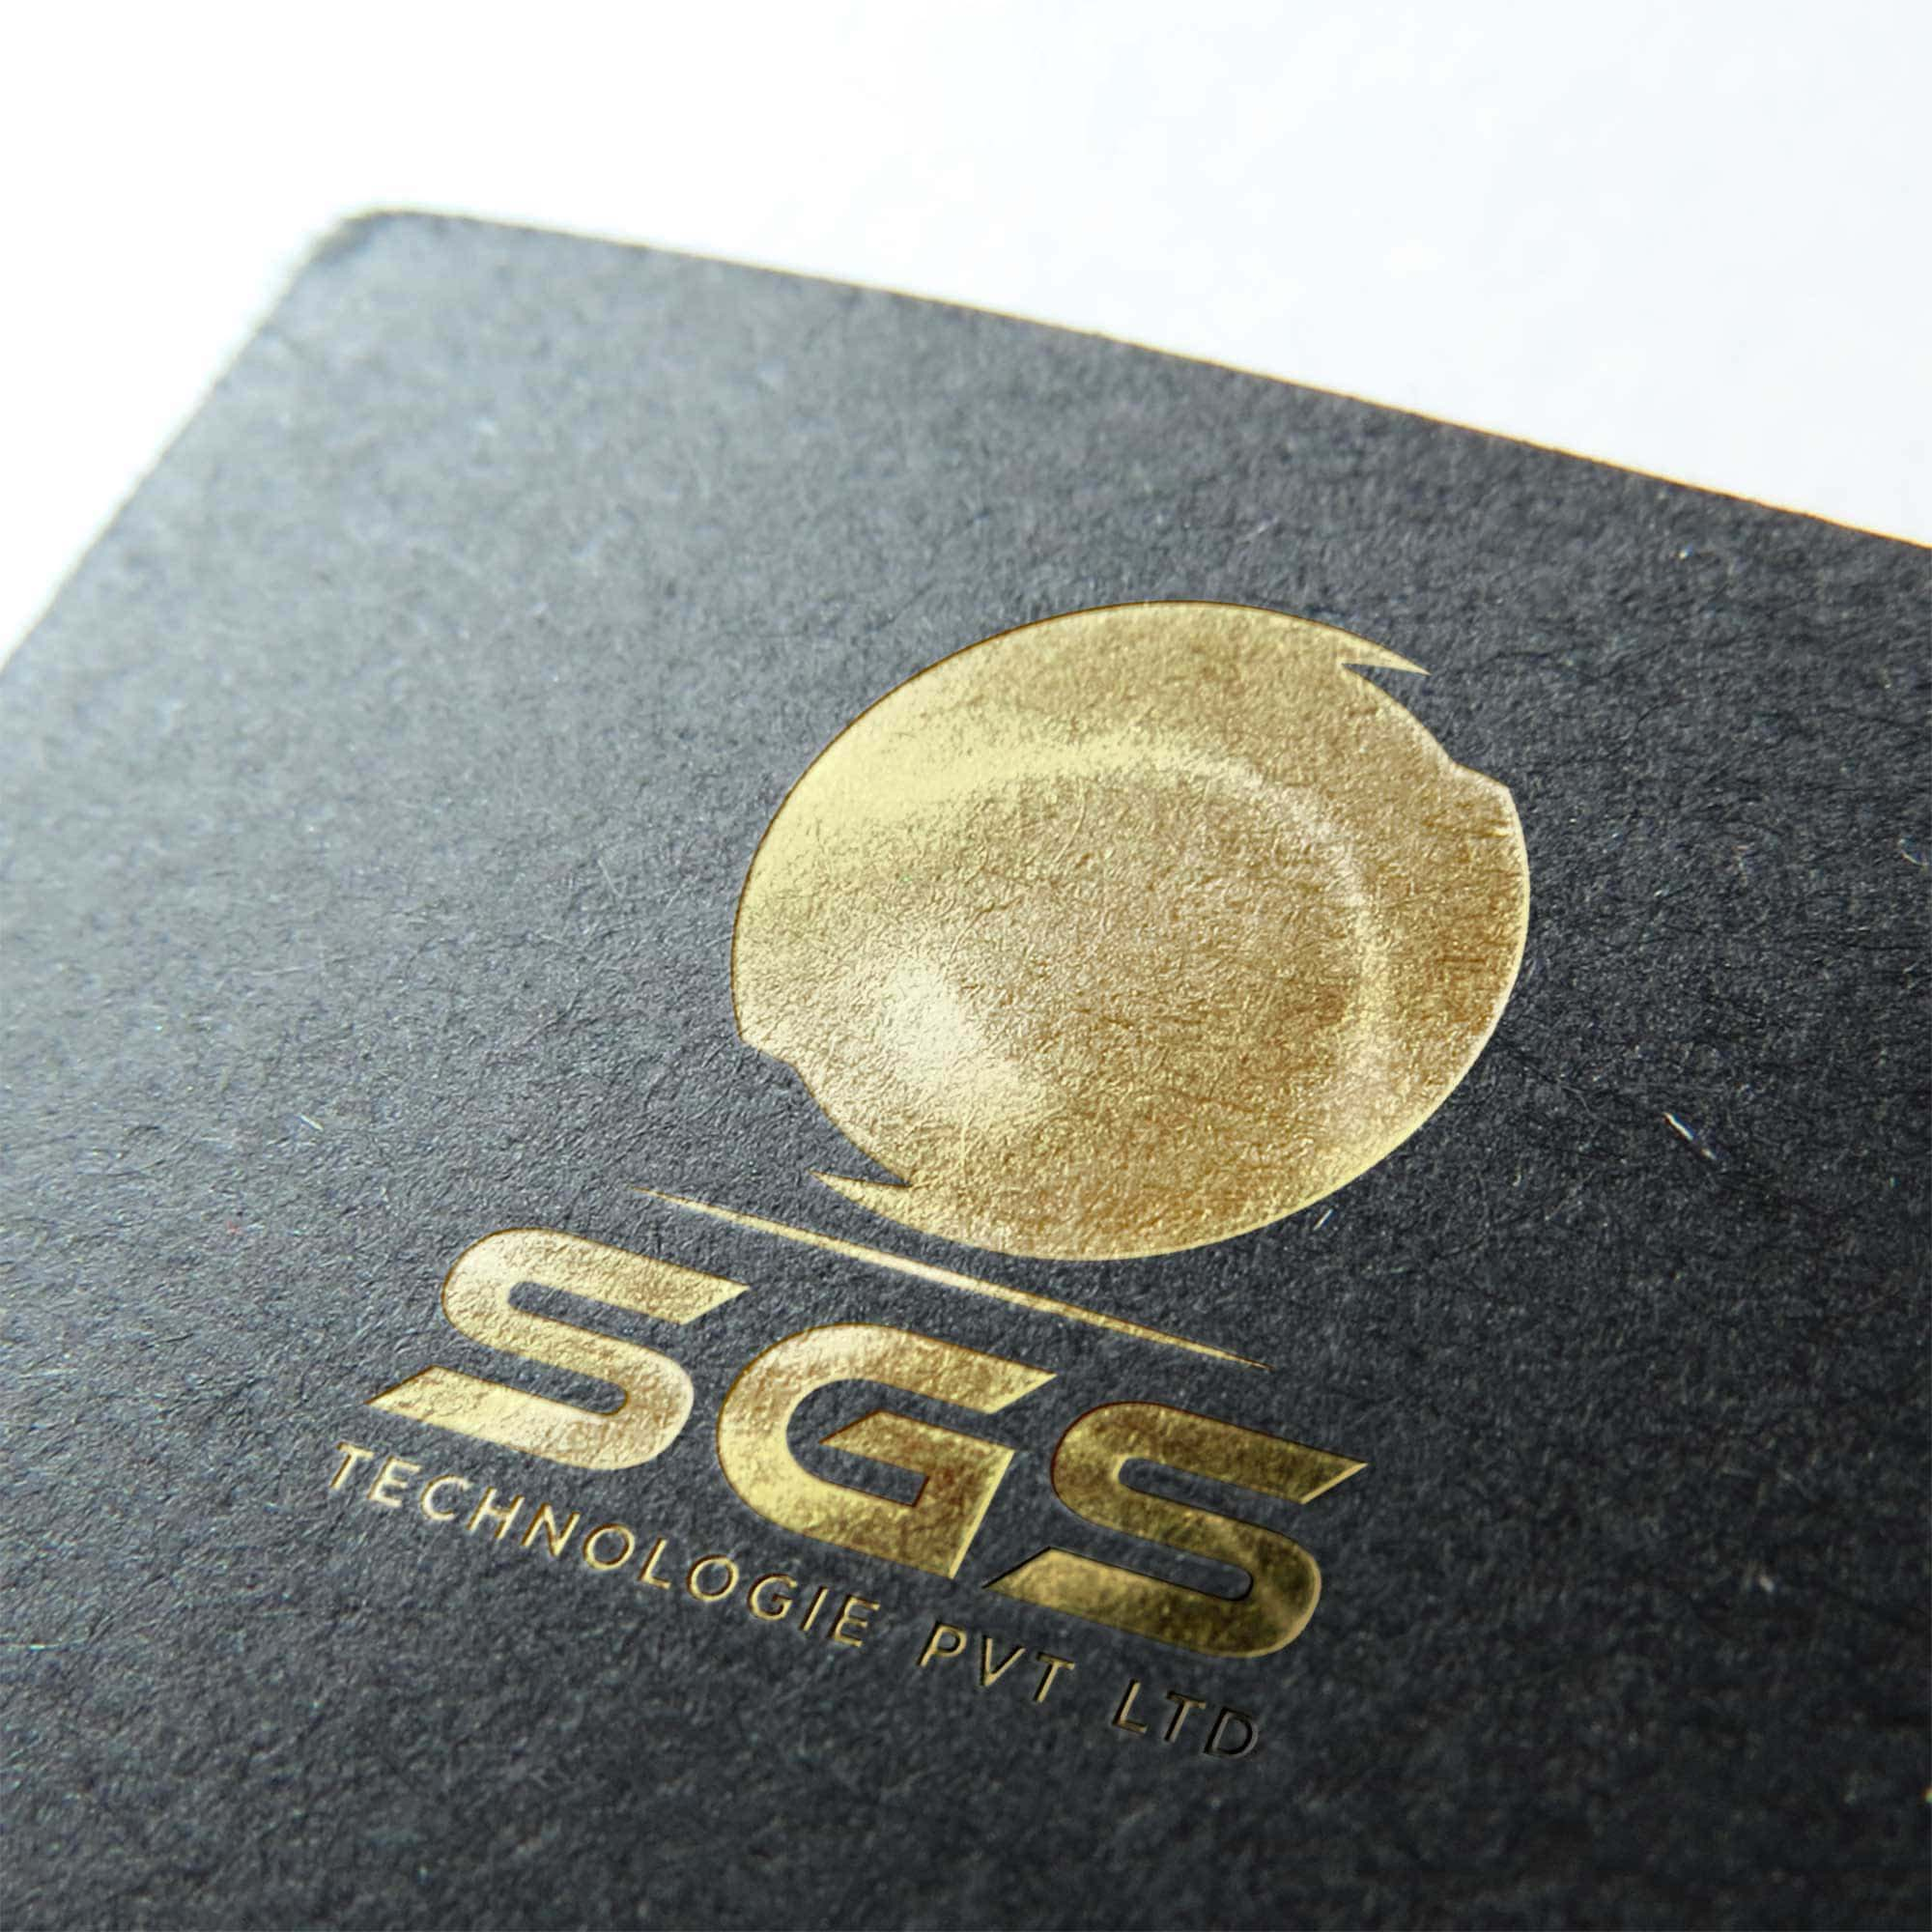 Slick Gold Foil Stamp Mockup